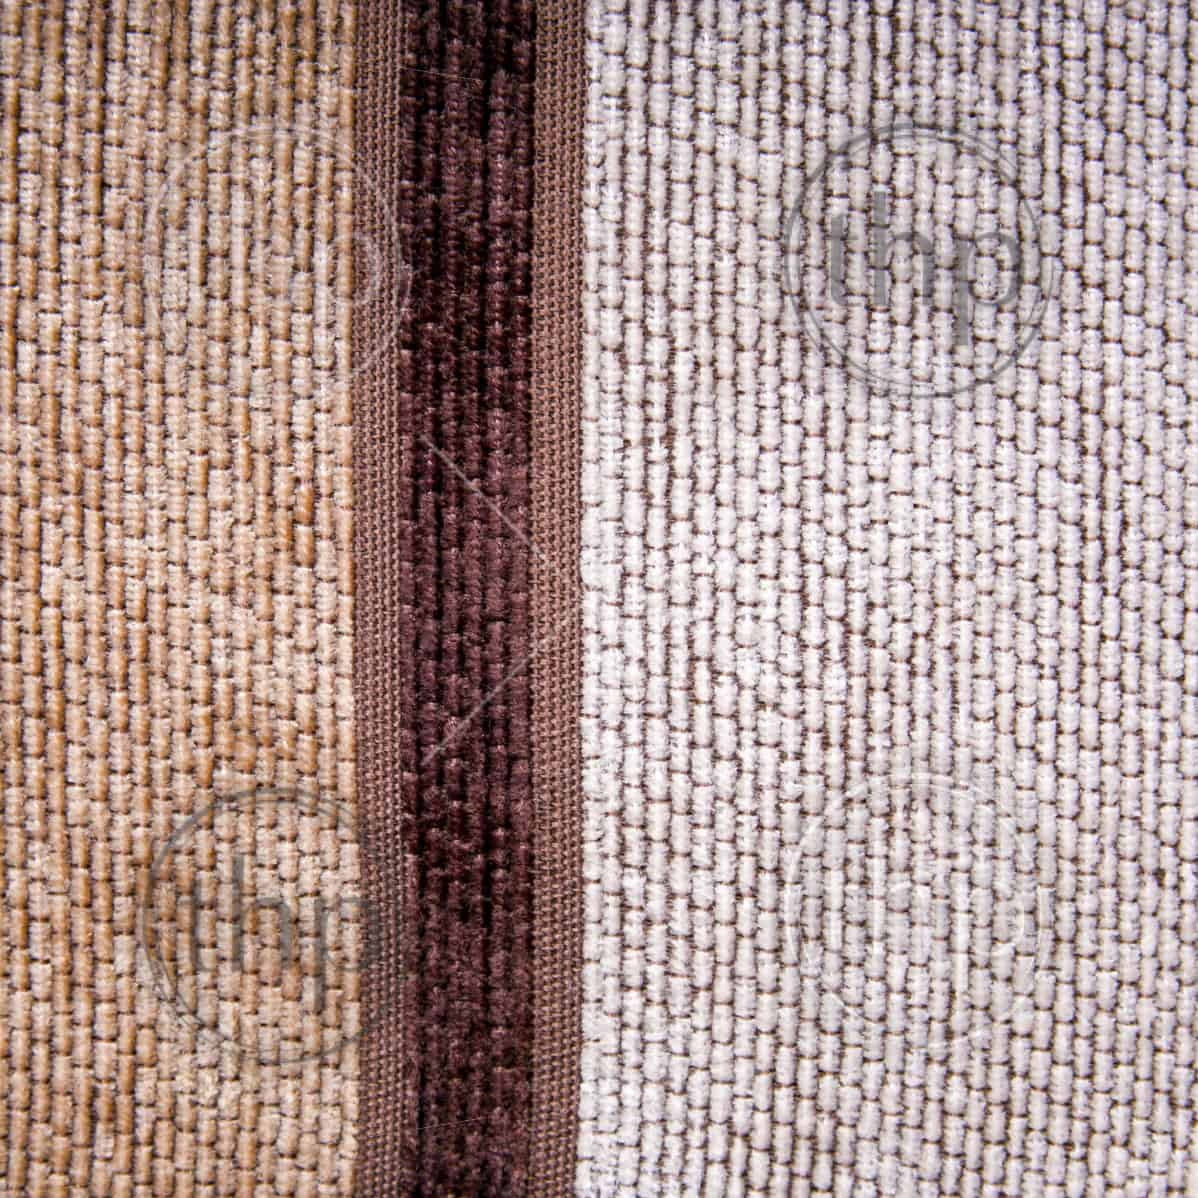 Retro styled fabric in browns and thick weave